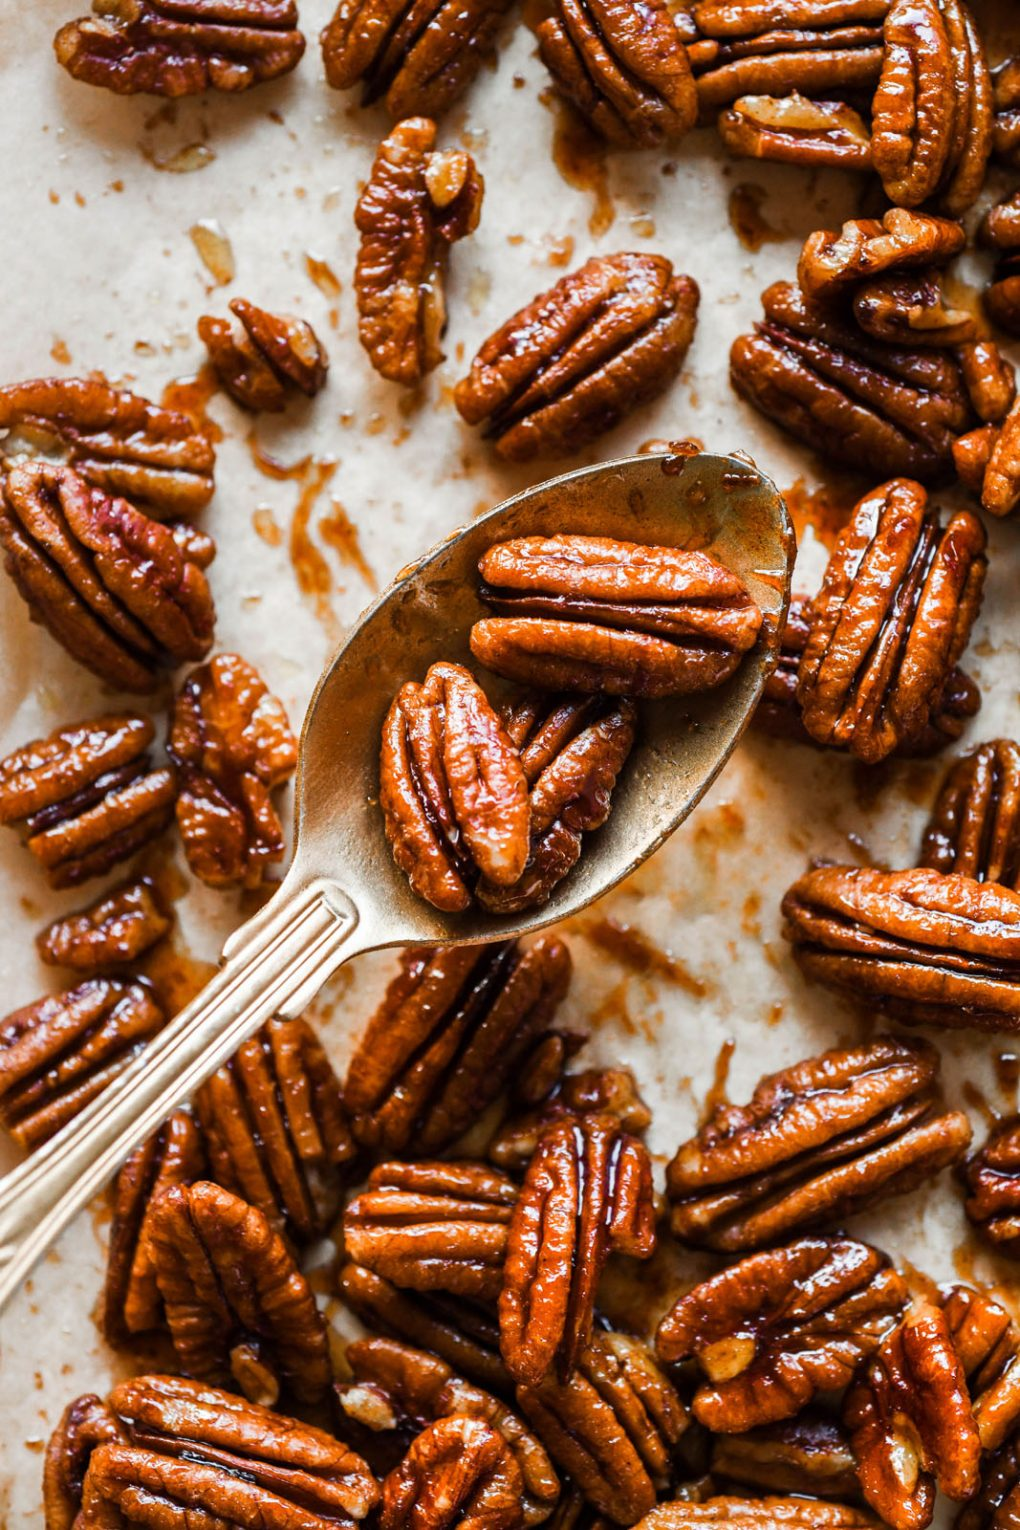 Close up shot of a spoon lifting some golden brown candied pecans up over a parchment paper lined baking sheet filled with easy maple syrup candied pecans.